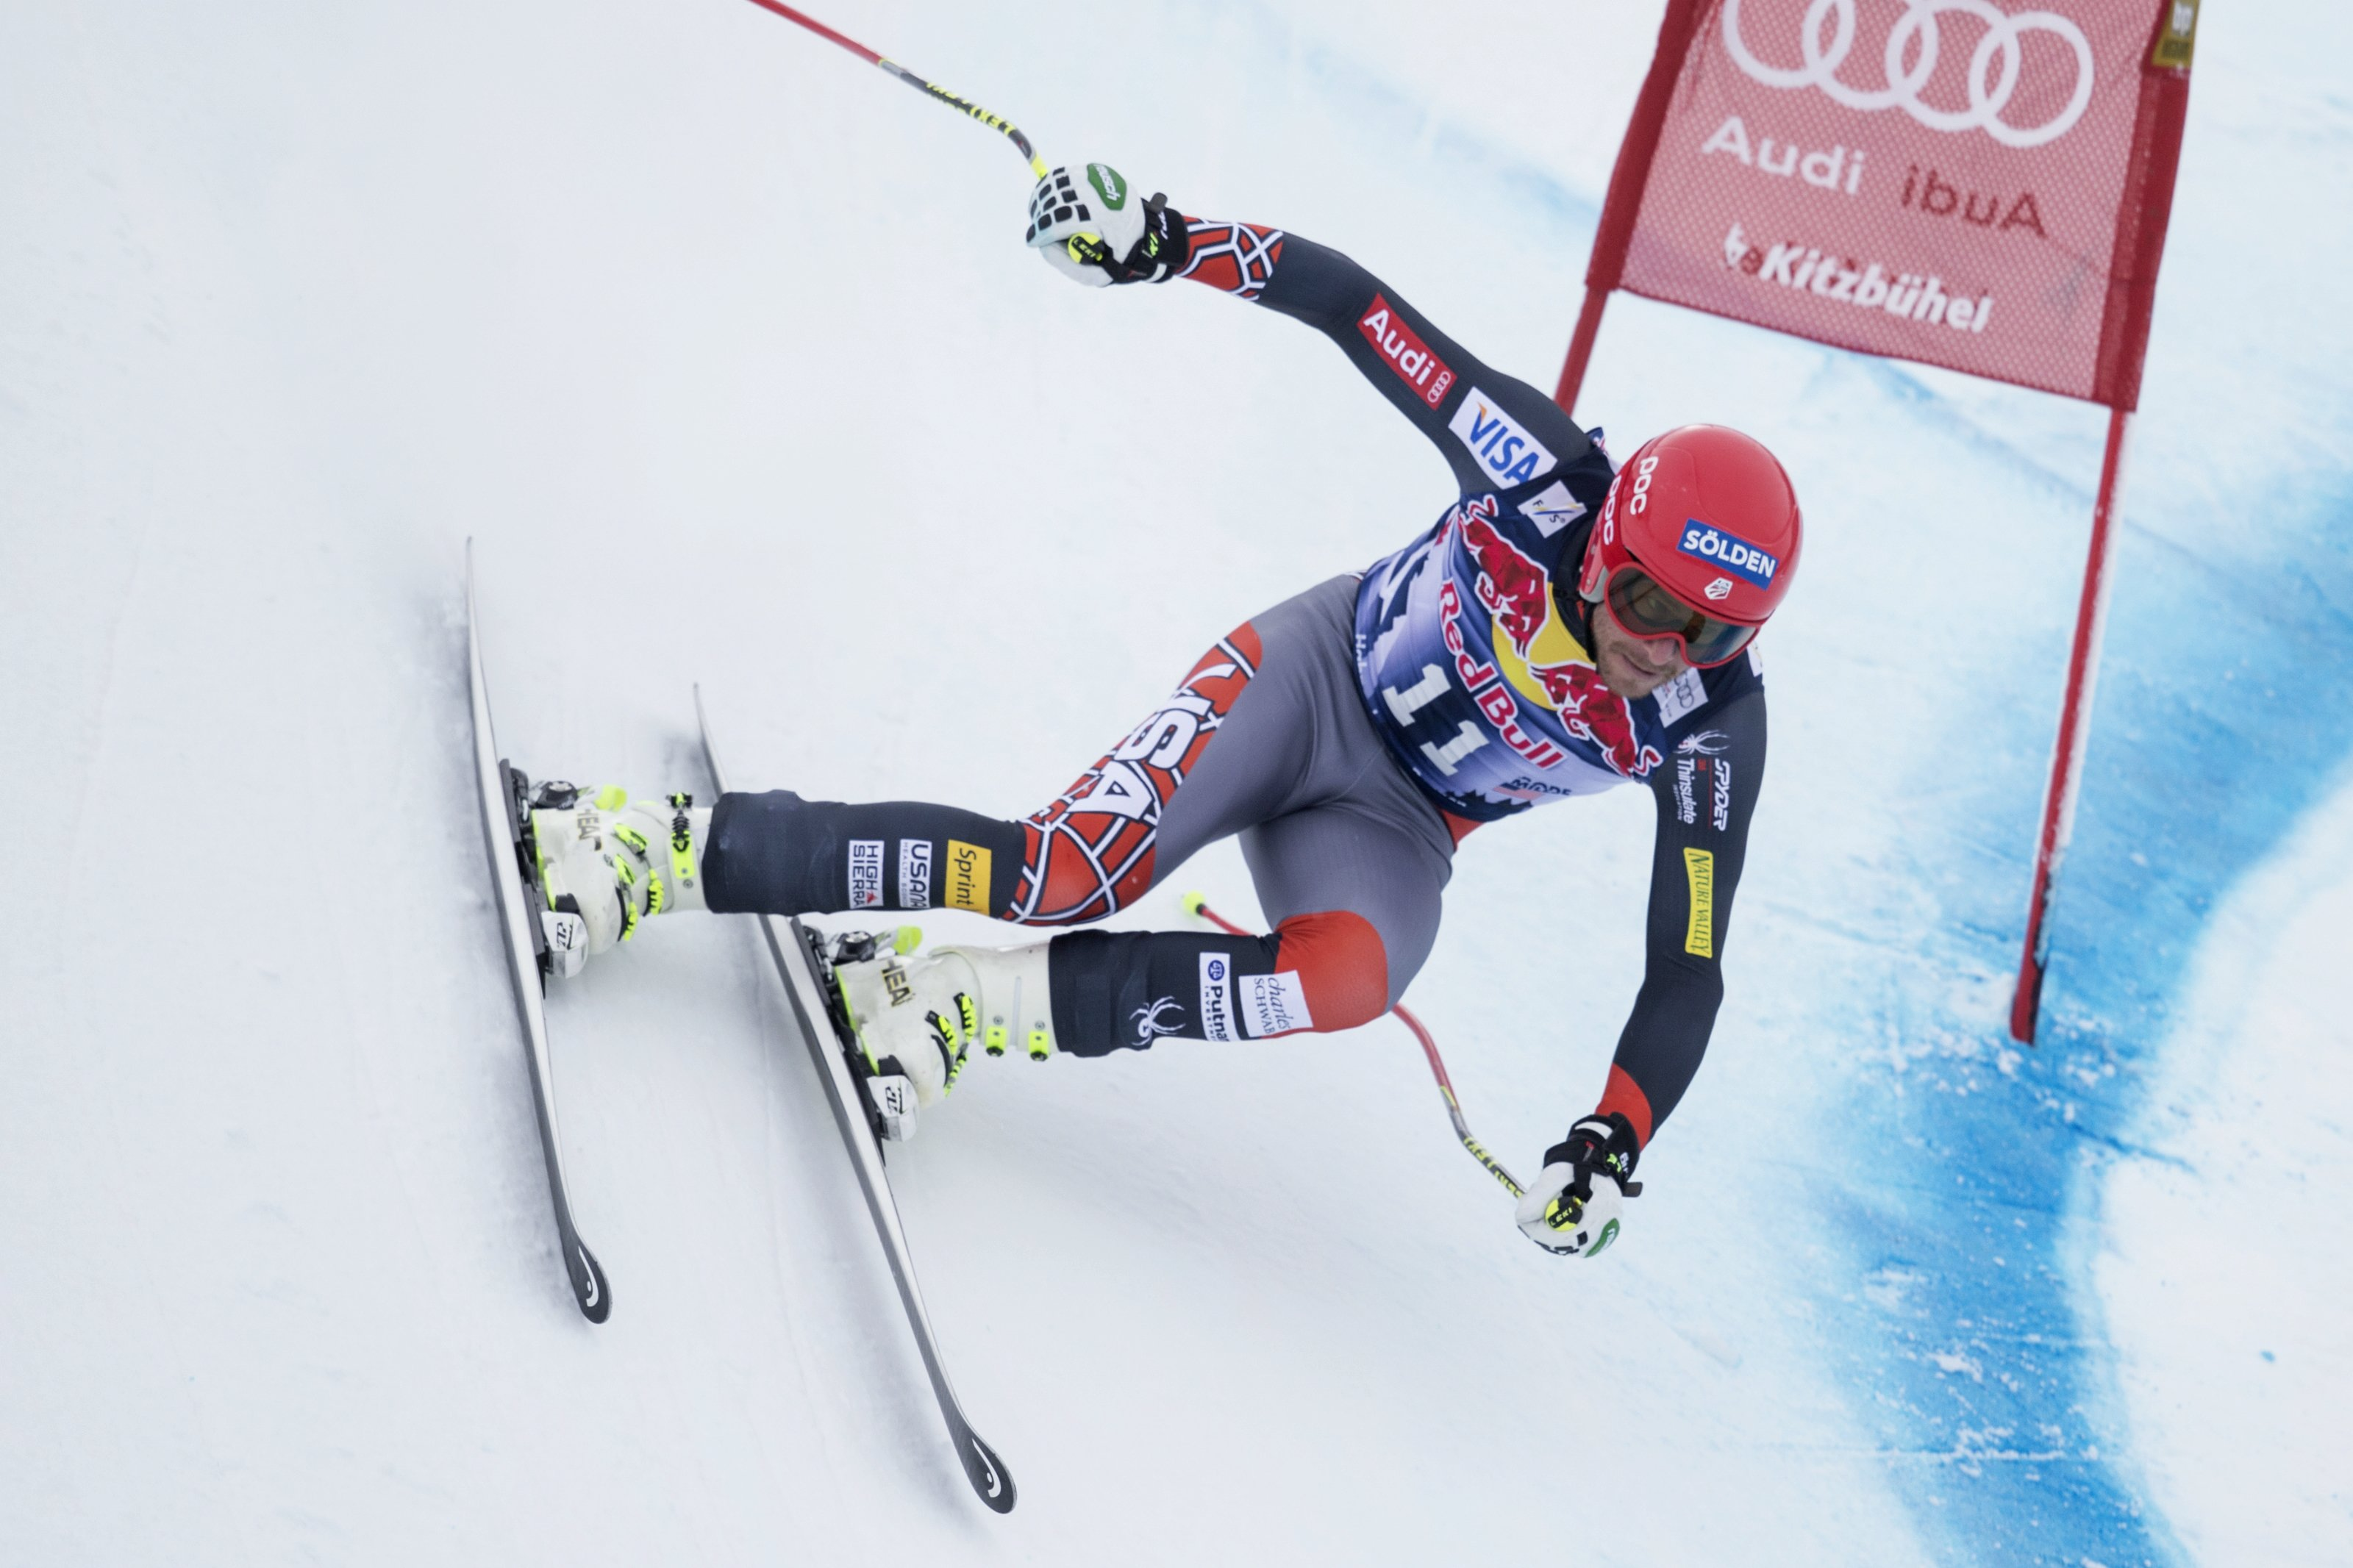 Bode Miller competes during the downhill at the Hahnenkamm Race 2014 in Kitzbuhel, Austria. PHOTO: Red Bull Content Pool